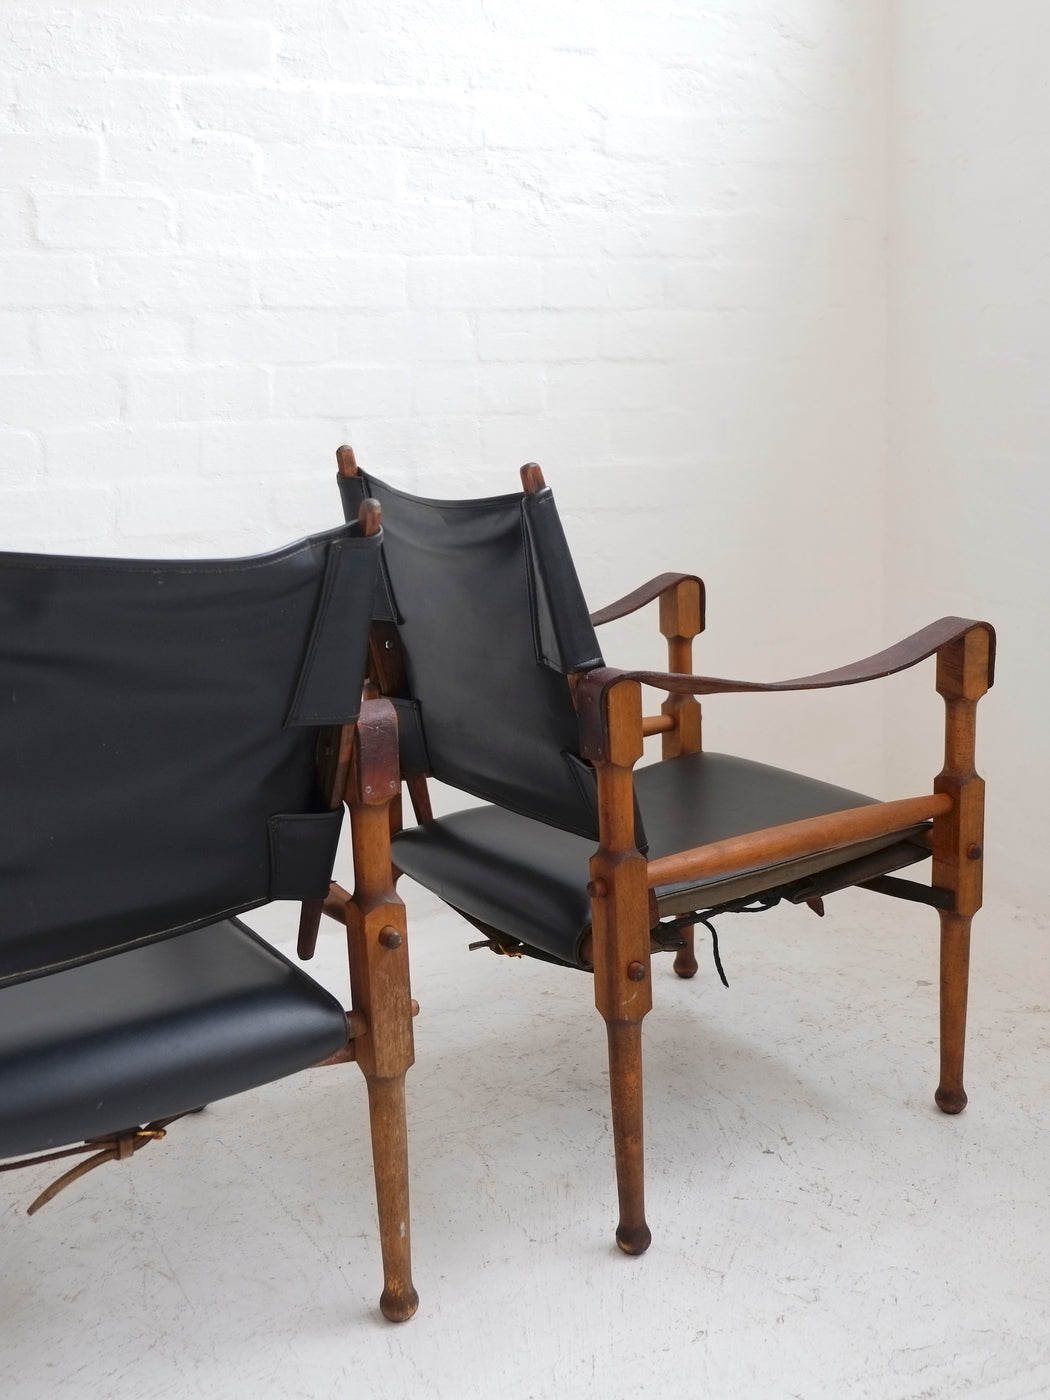 Michael Hirst 'Safari' Chairs